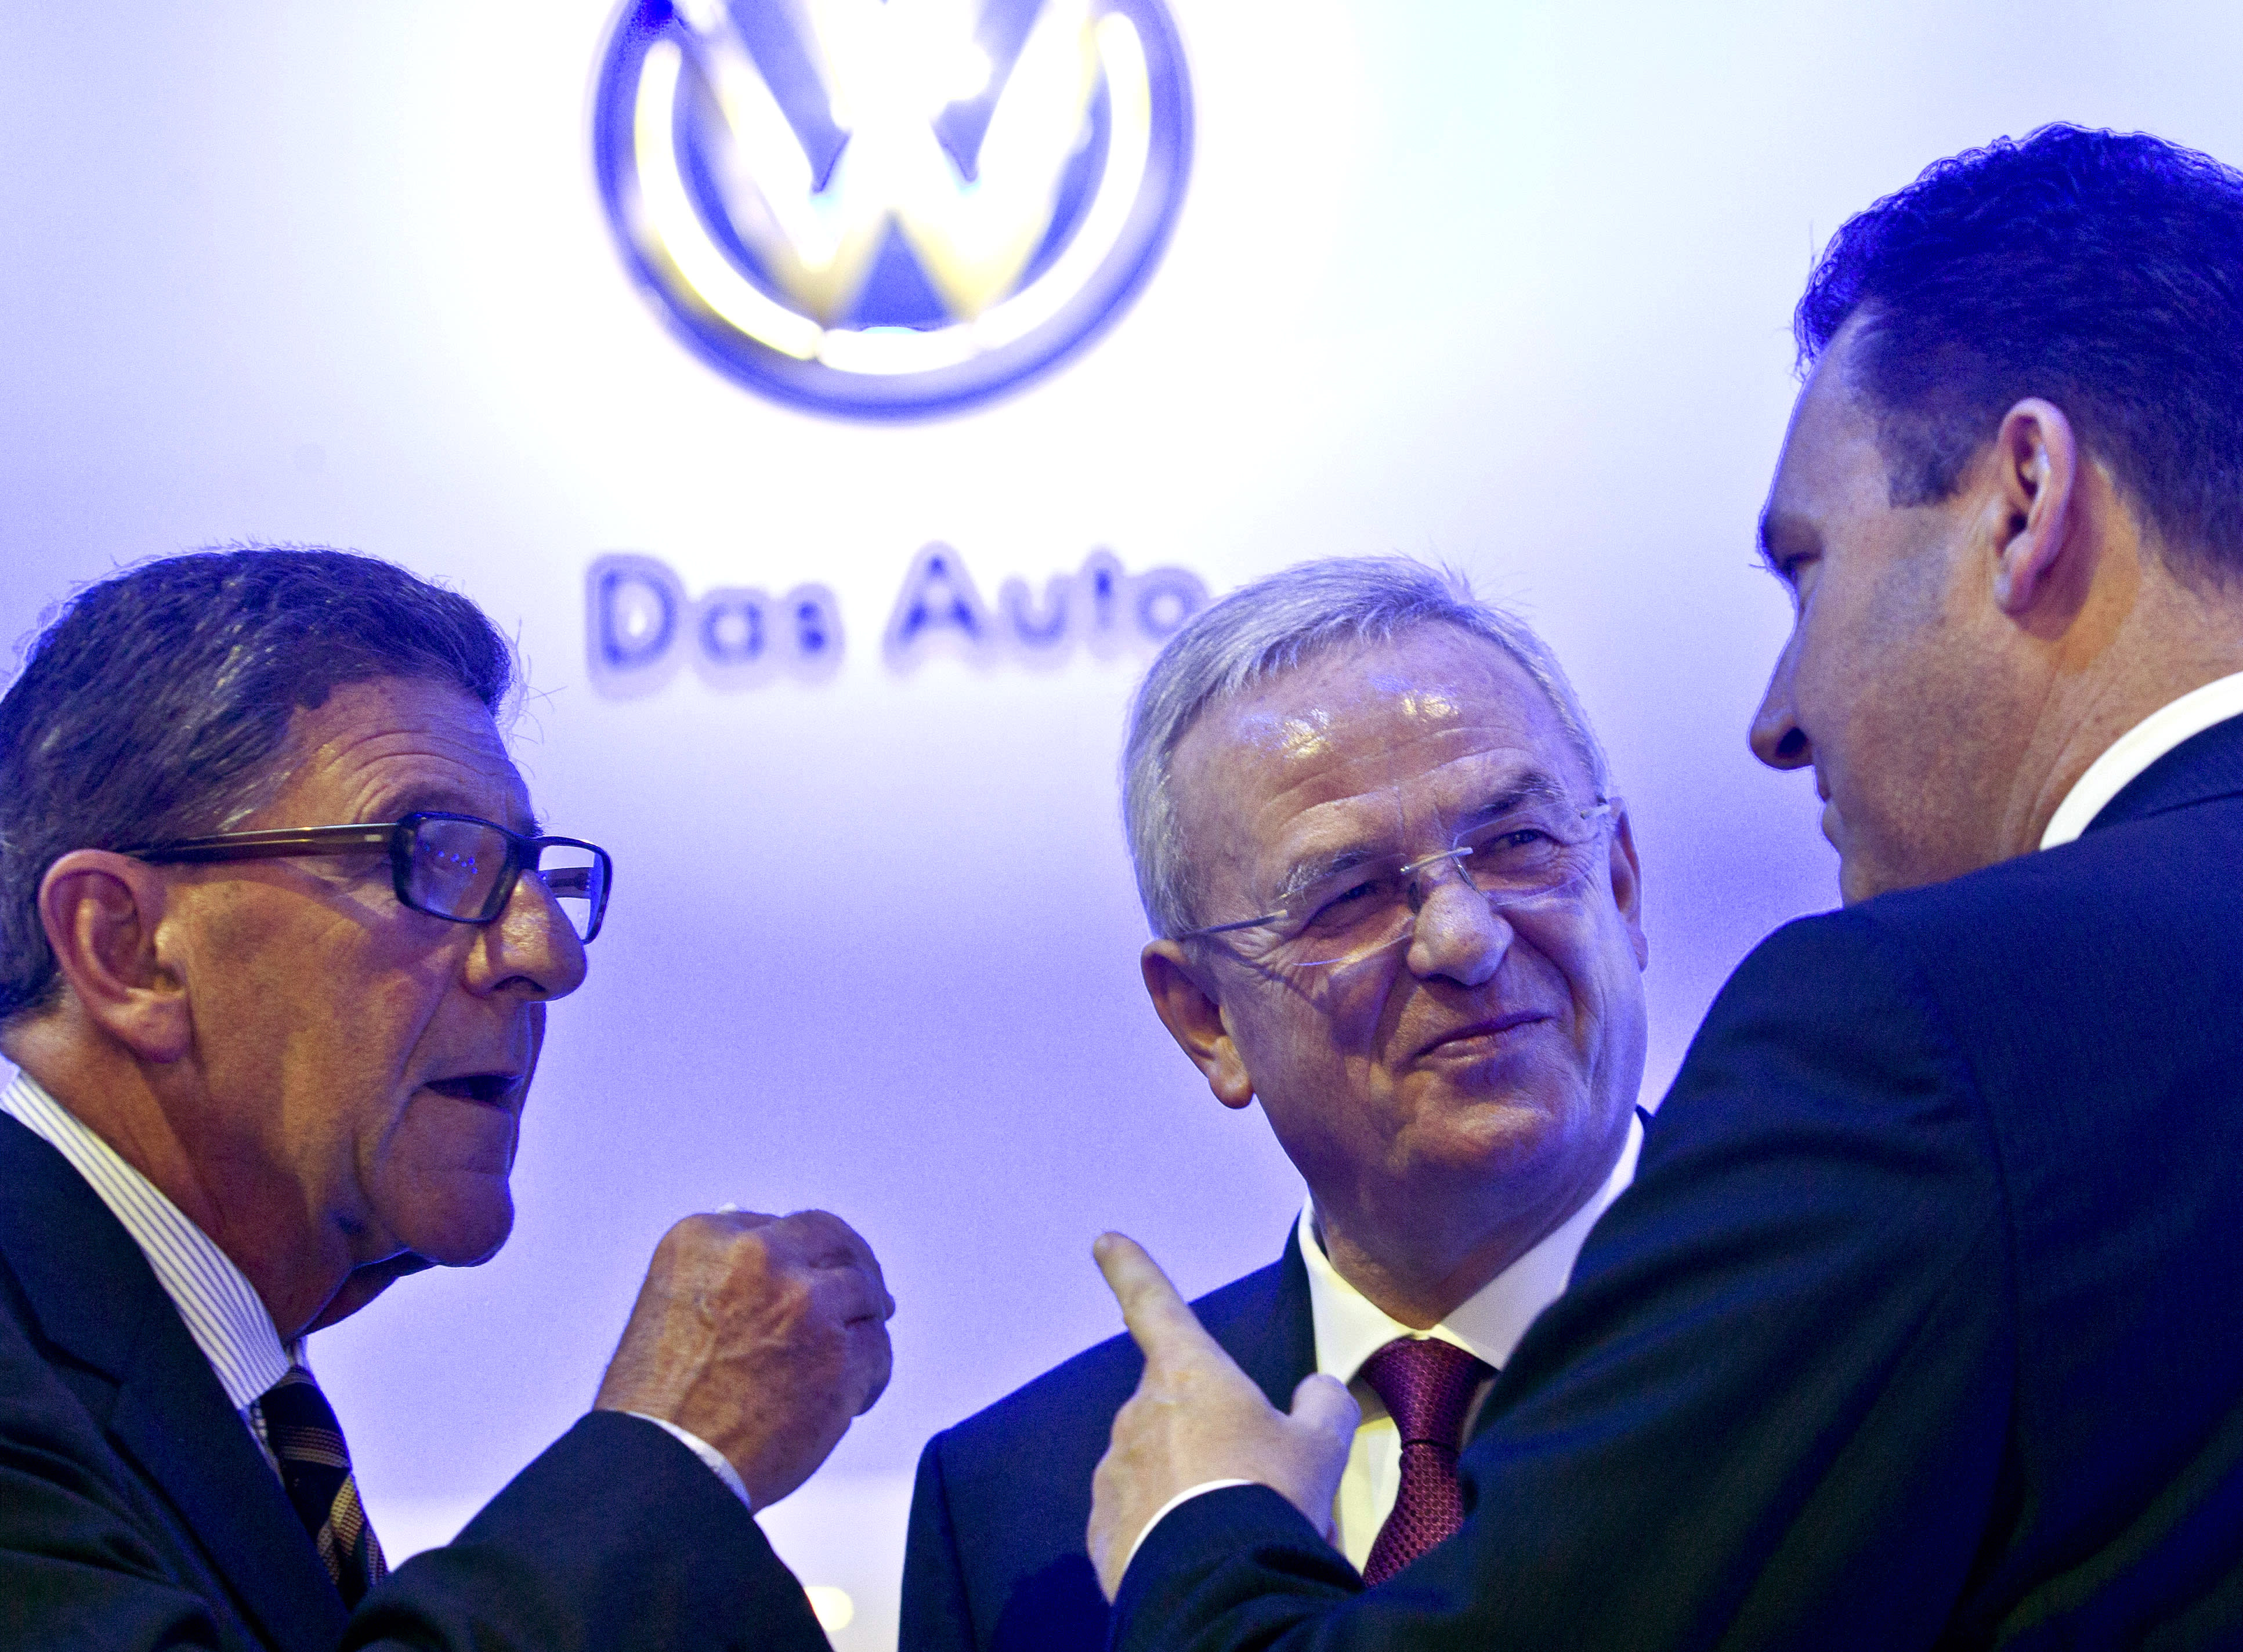 Volkswagen is in the midst of a full-blown leadership crisis and it's getting worse all the time